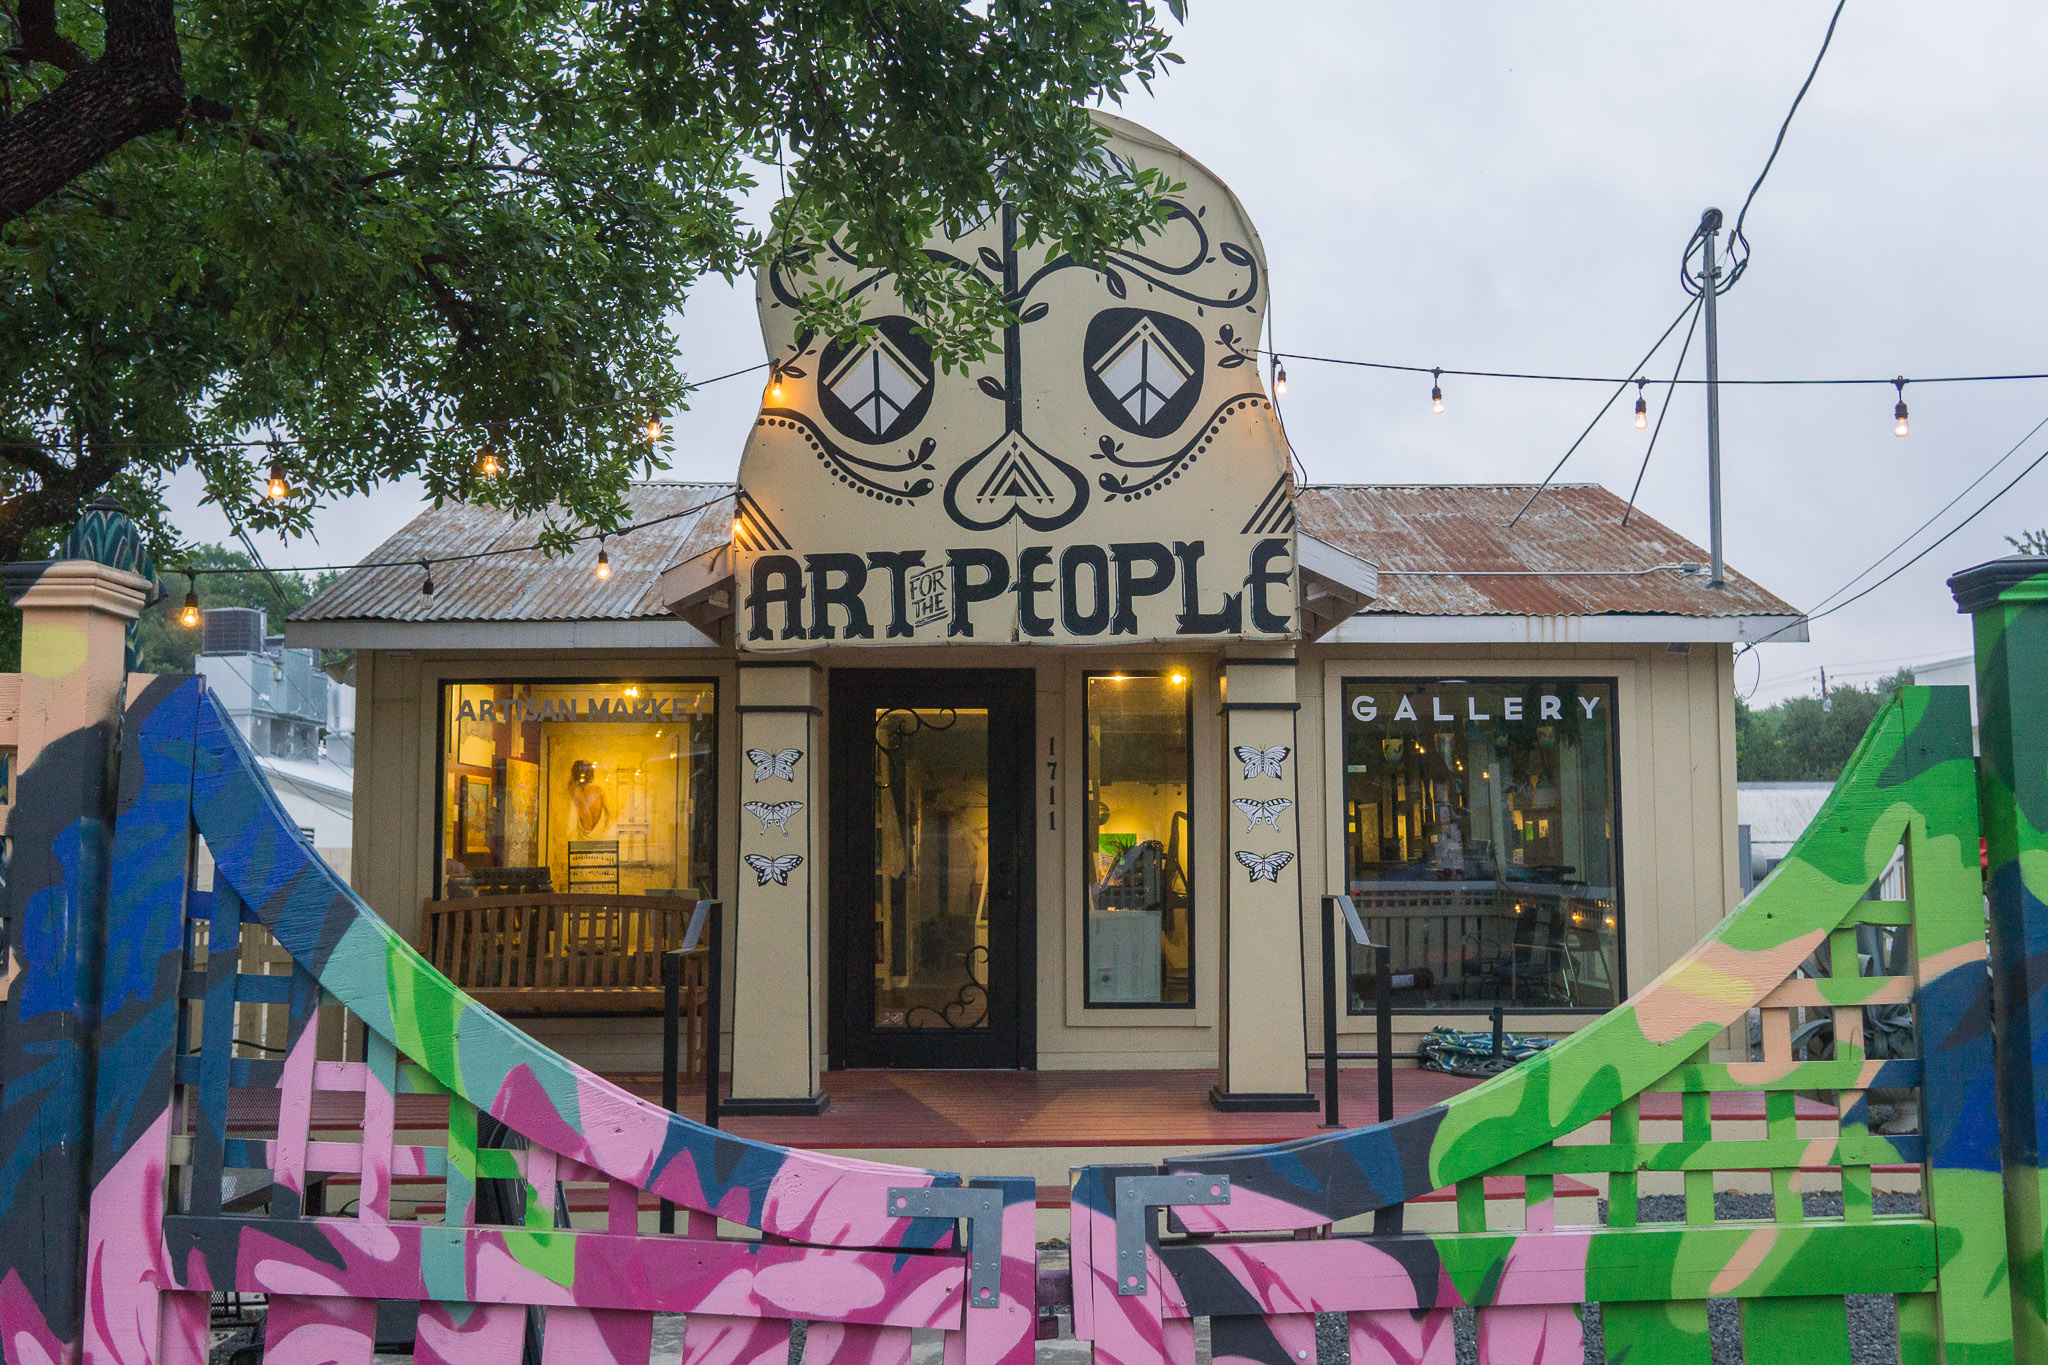 A gallery on South 1st.